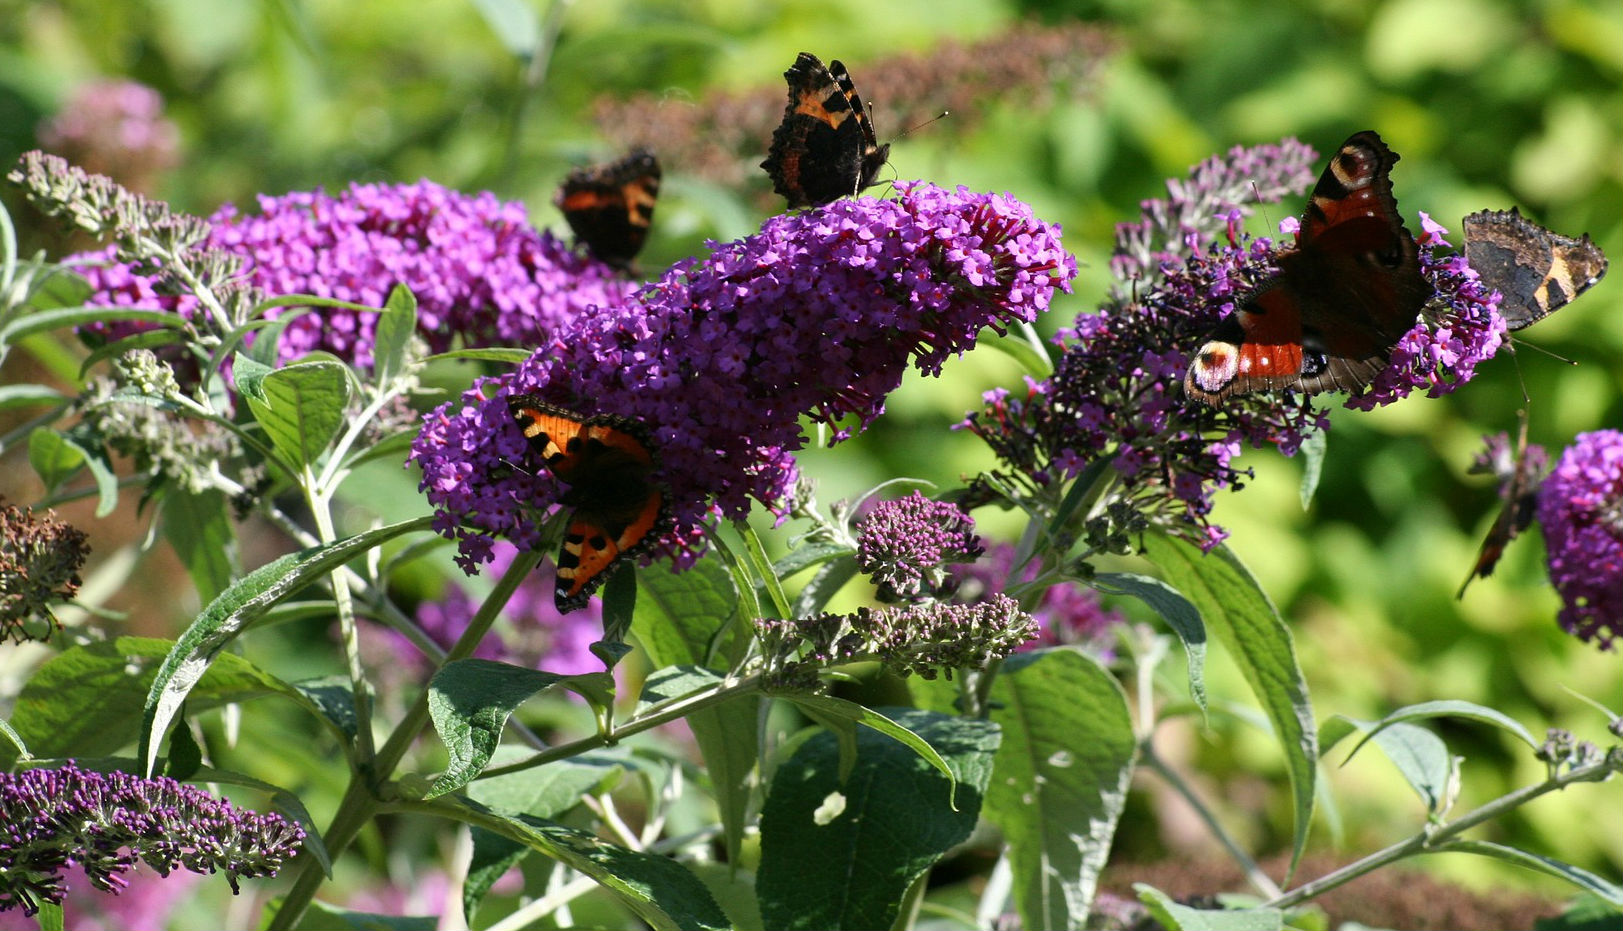 Black and orange Butterflies collecting nectar from the purple flower clusters of a butterfly bush